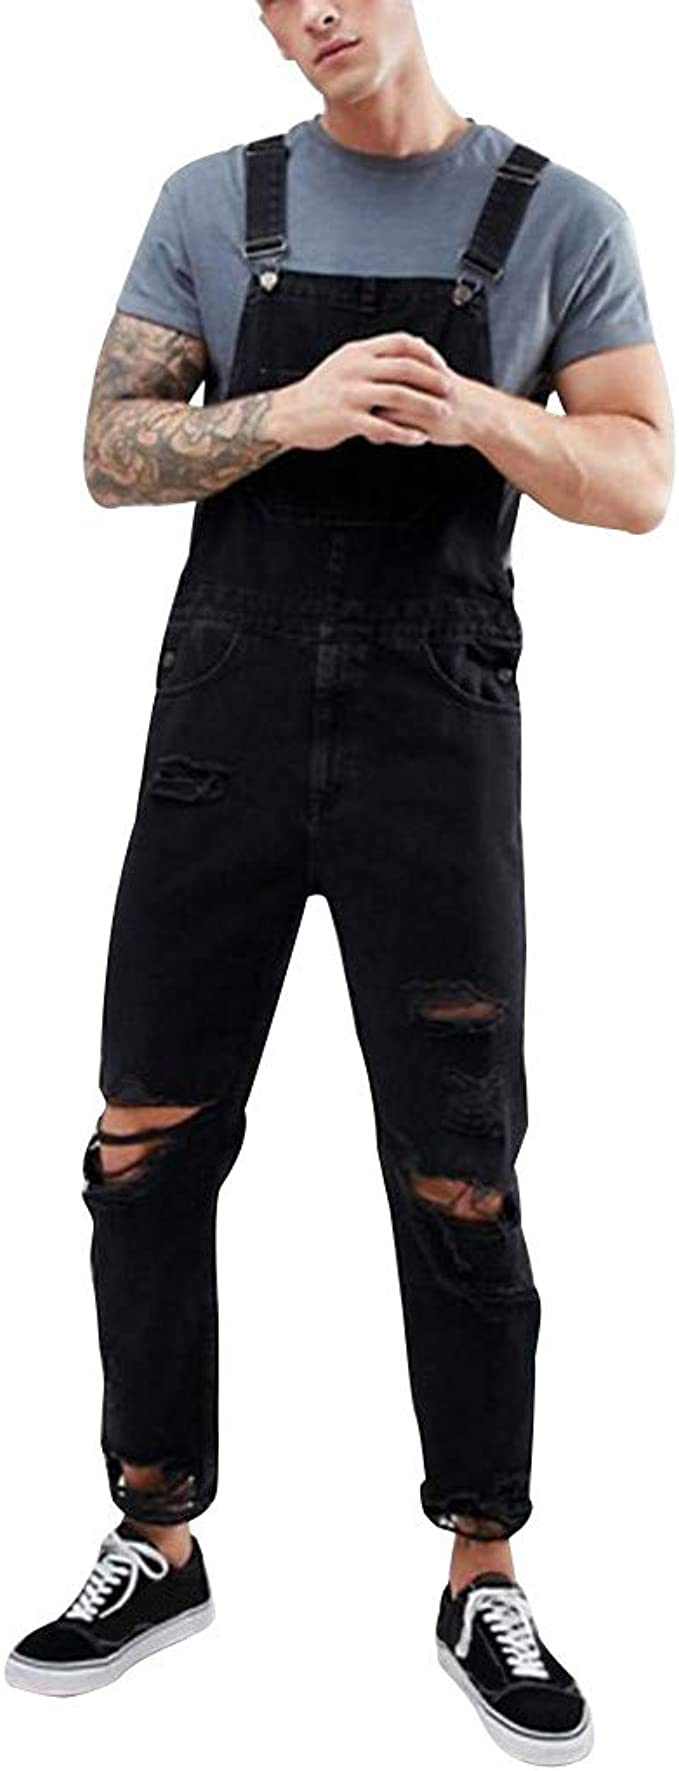 Men Classic Jeans Denims Ripped Hole Suspender Trousers Jumpsuits Overalls Pants